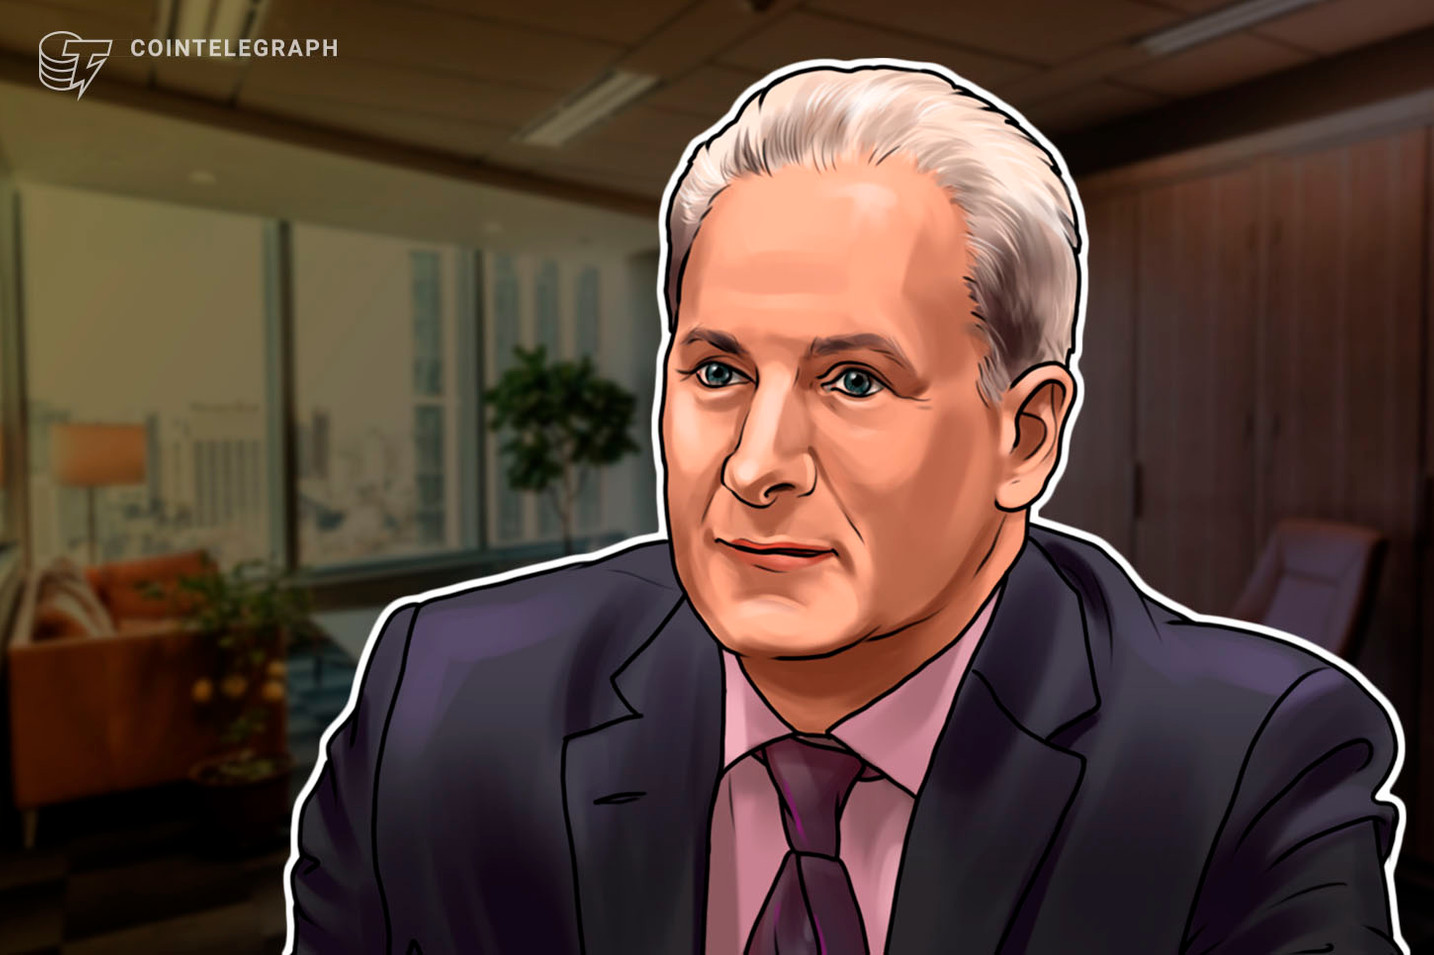 Wealthy Bitcoin critic Peter Schiff is soliciting BTC birthday gifts for his son